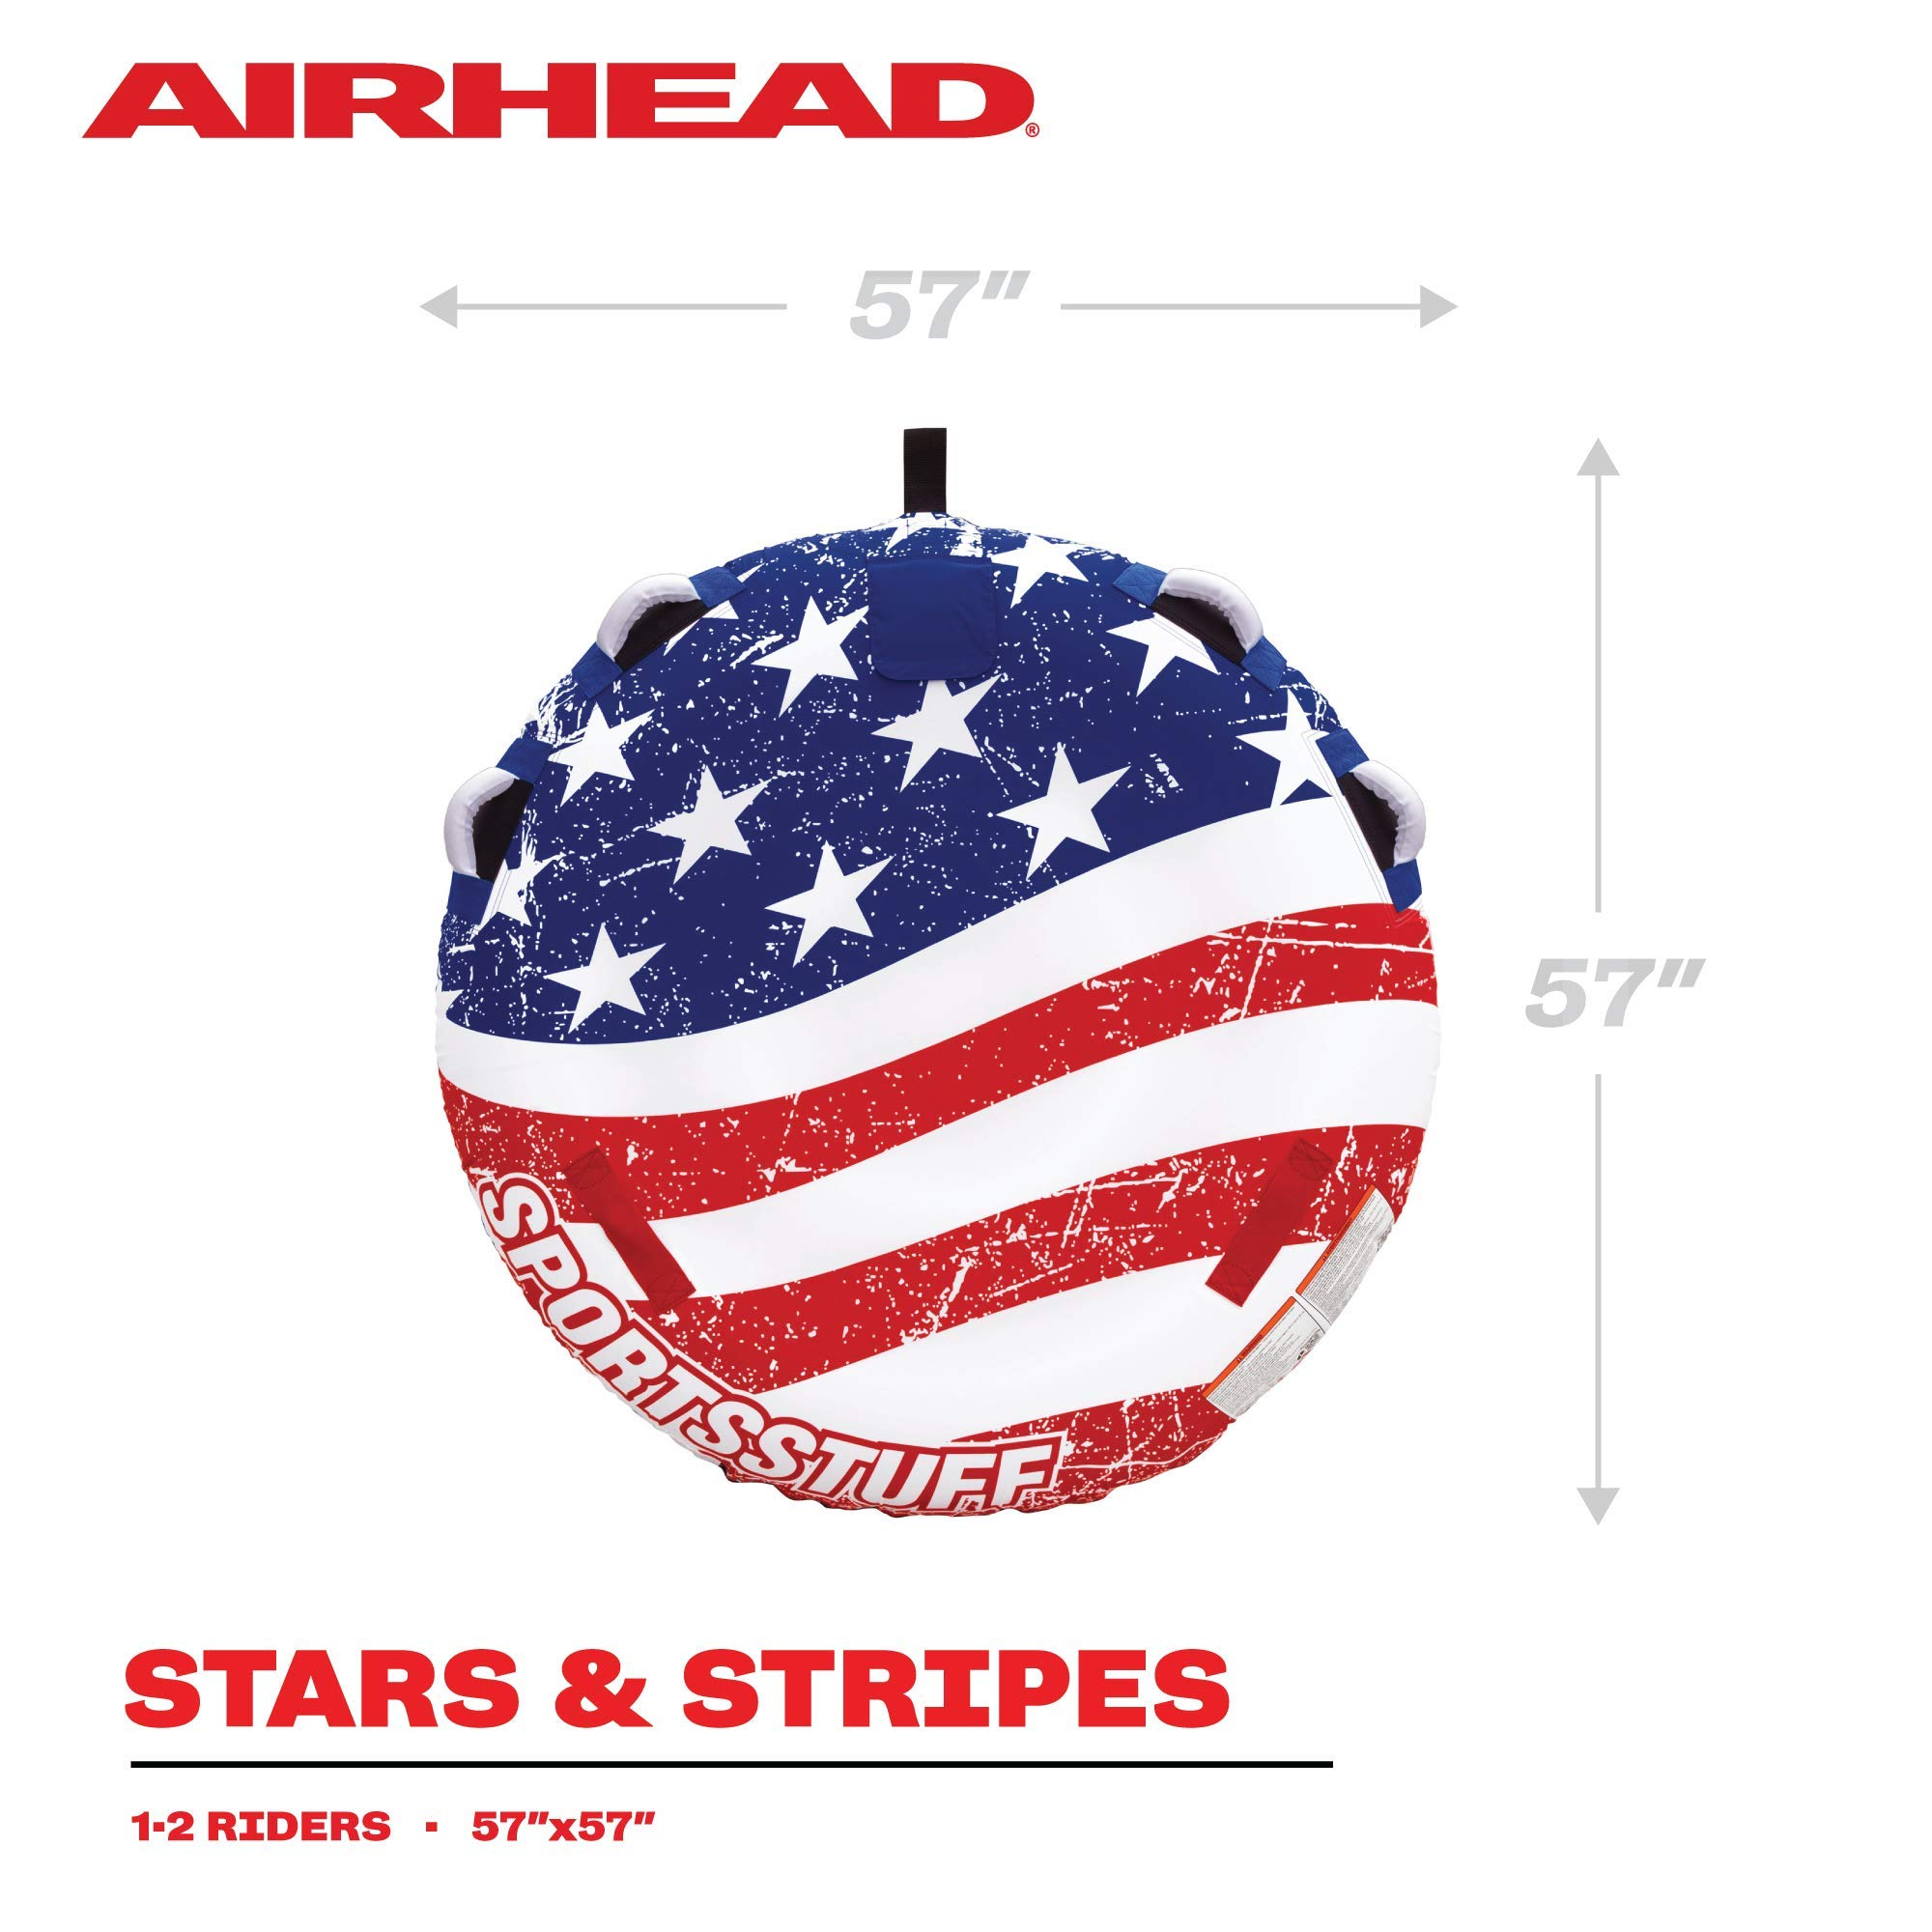 Sportsstuff Stars & Stripes   Towable Tube for Boating with 1-4 Rider Options